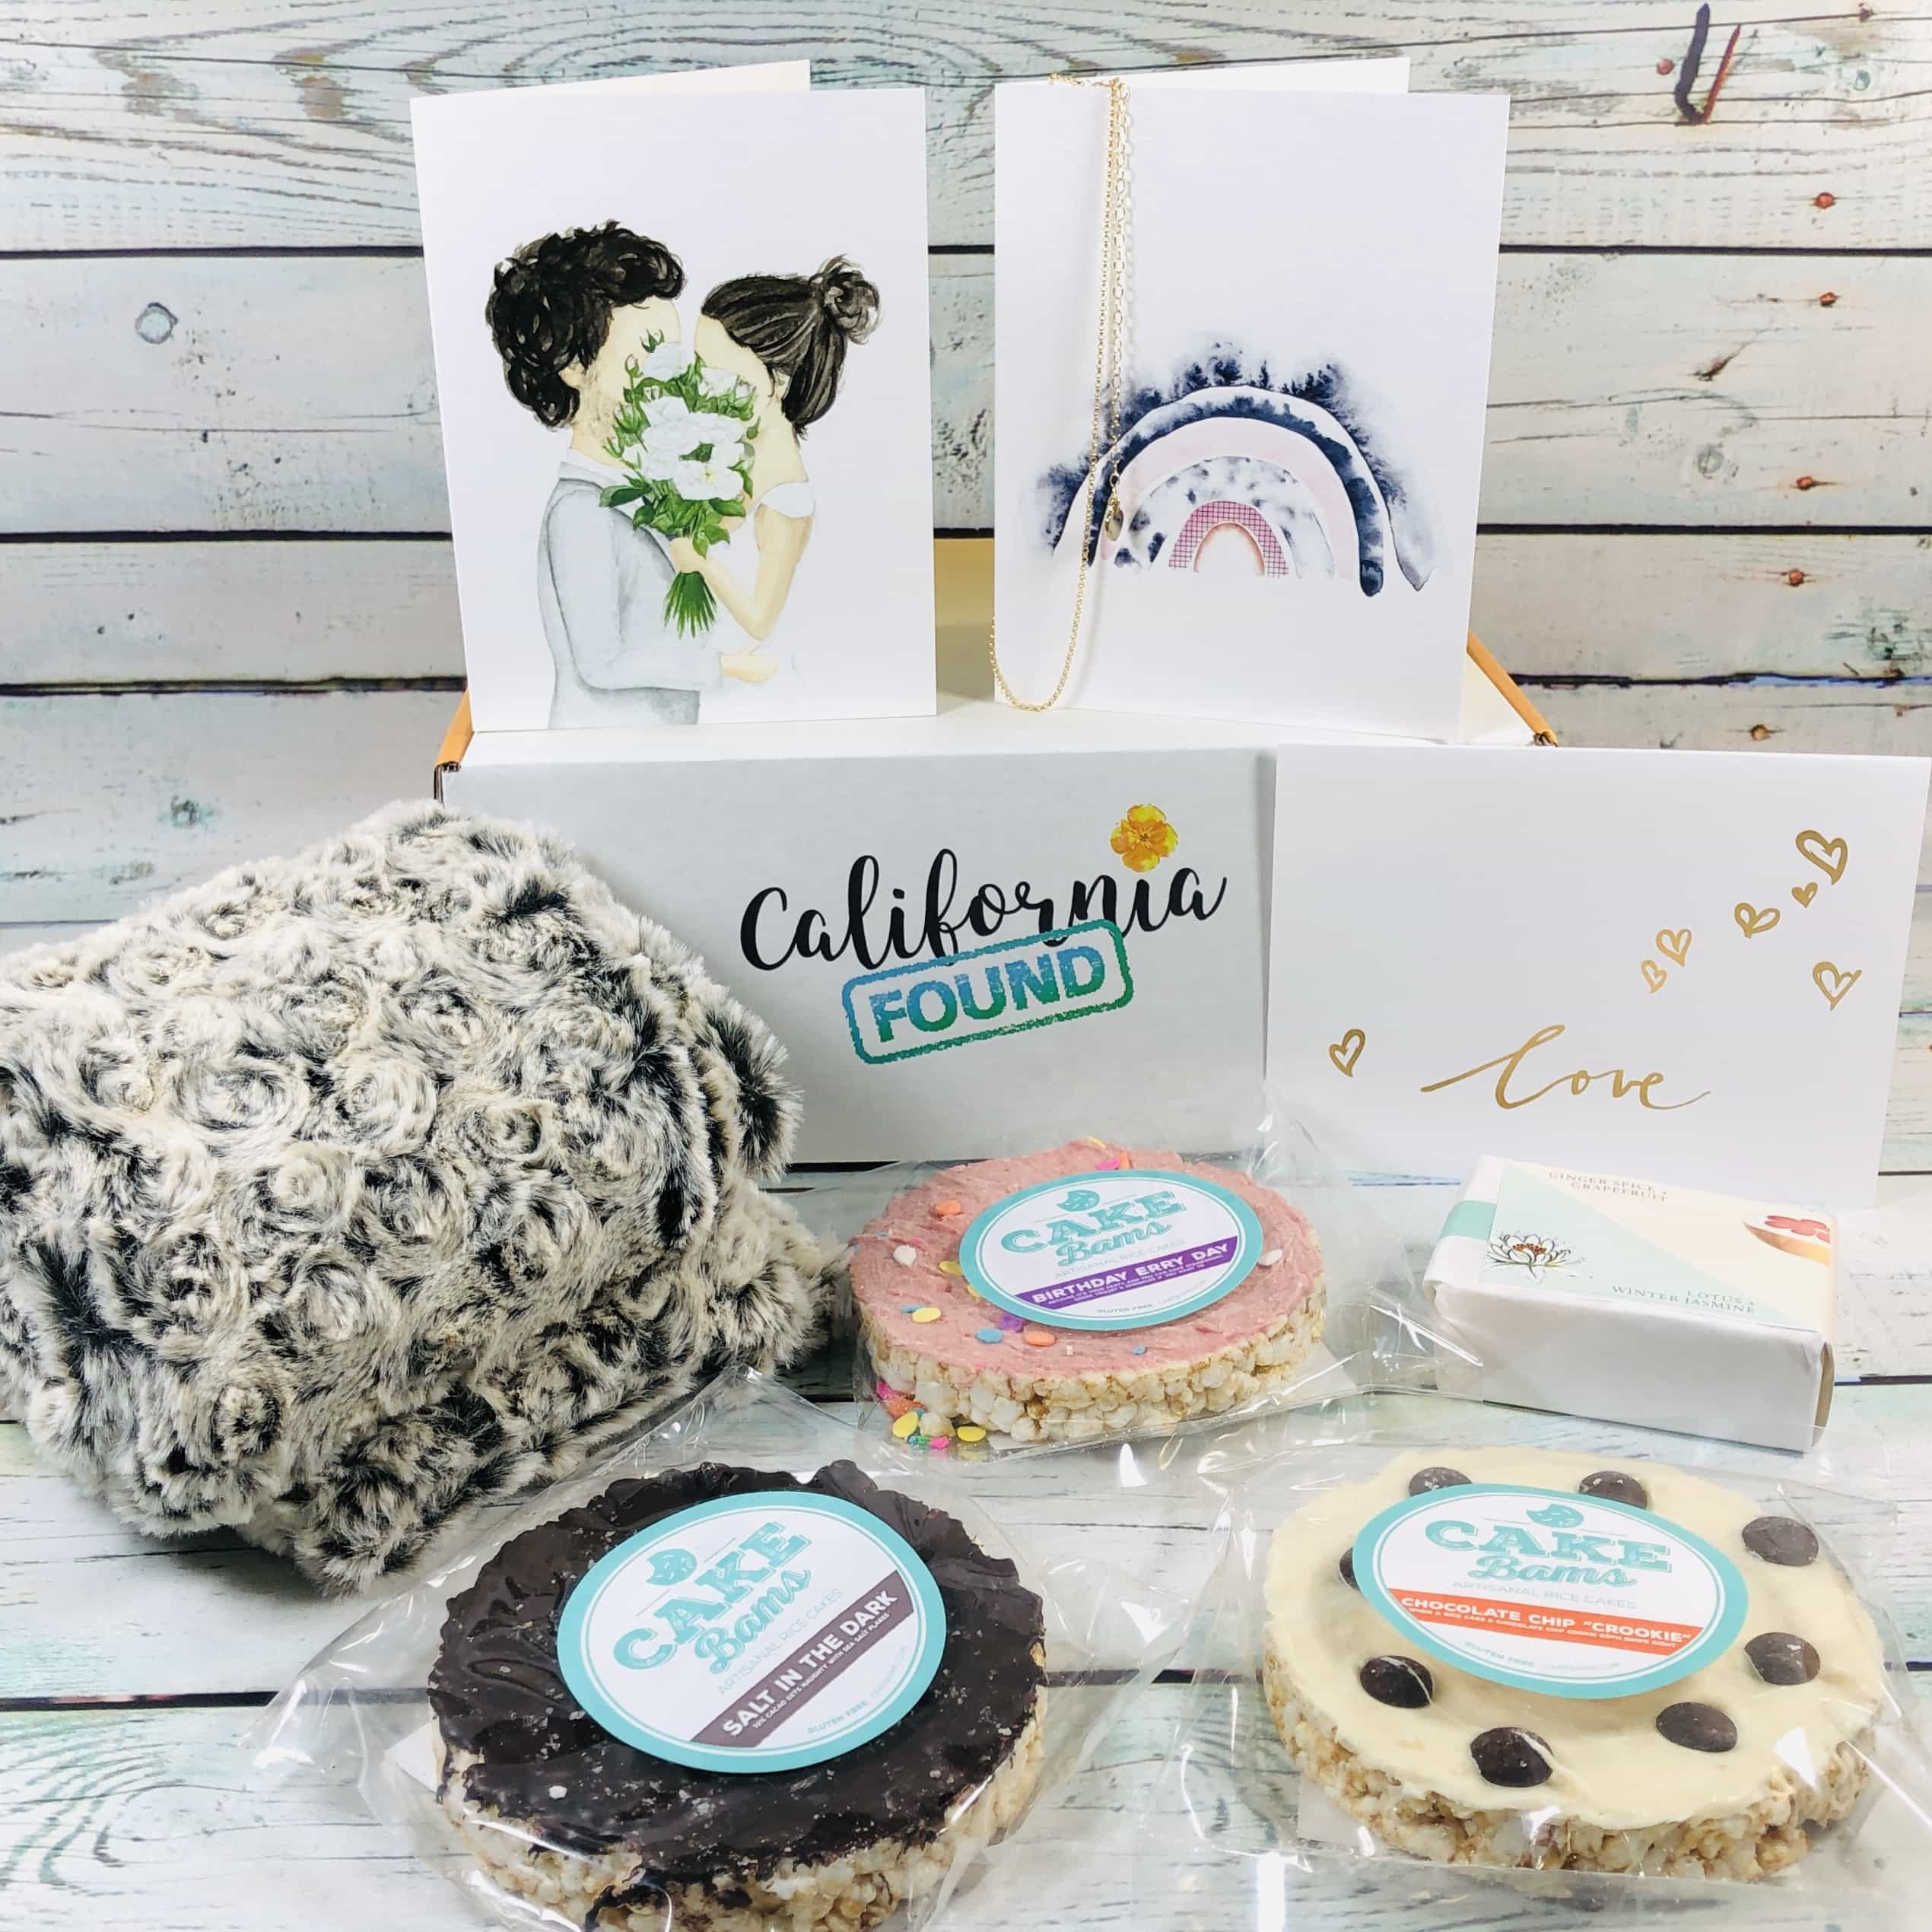 California Found January 2019 Subscription Box Review + Coupon